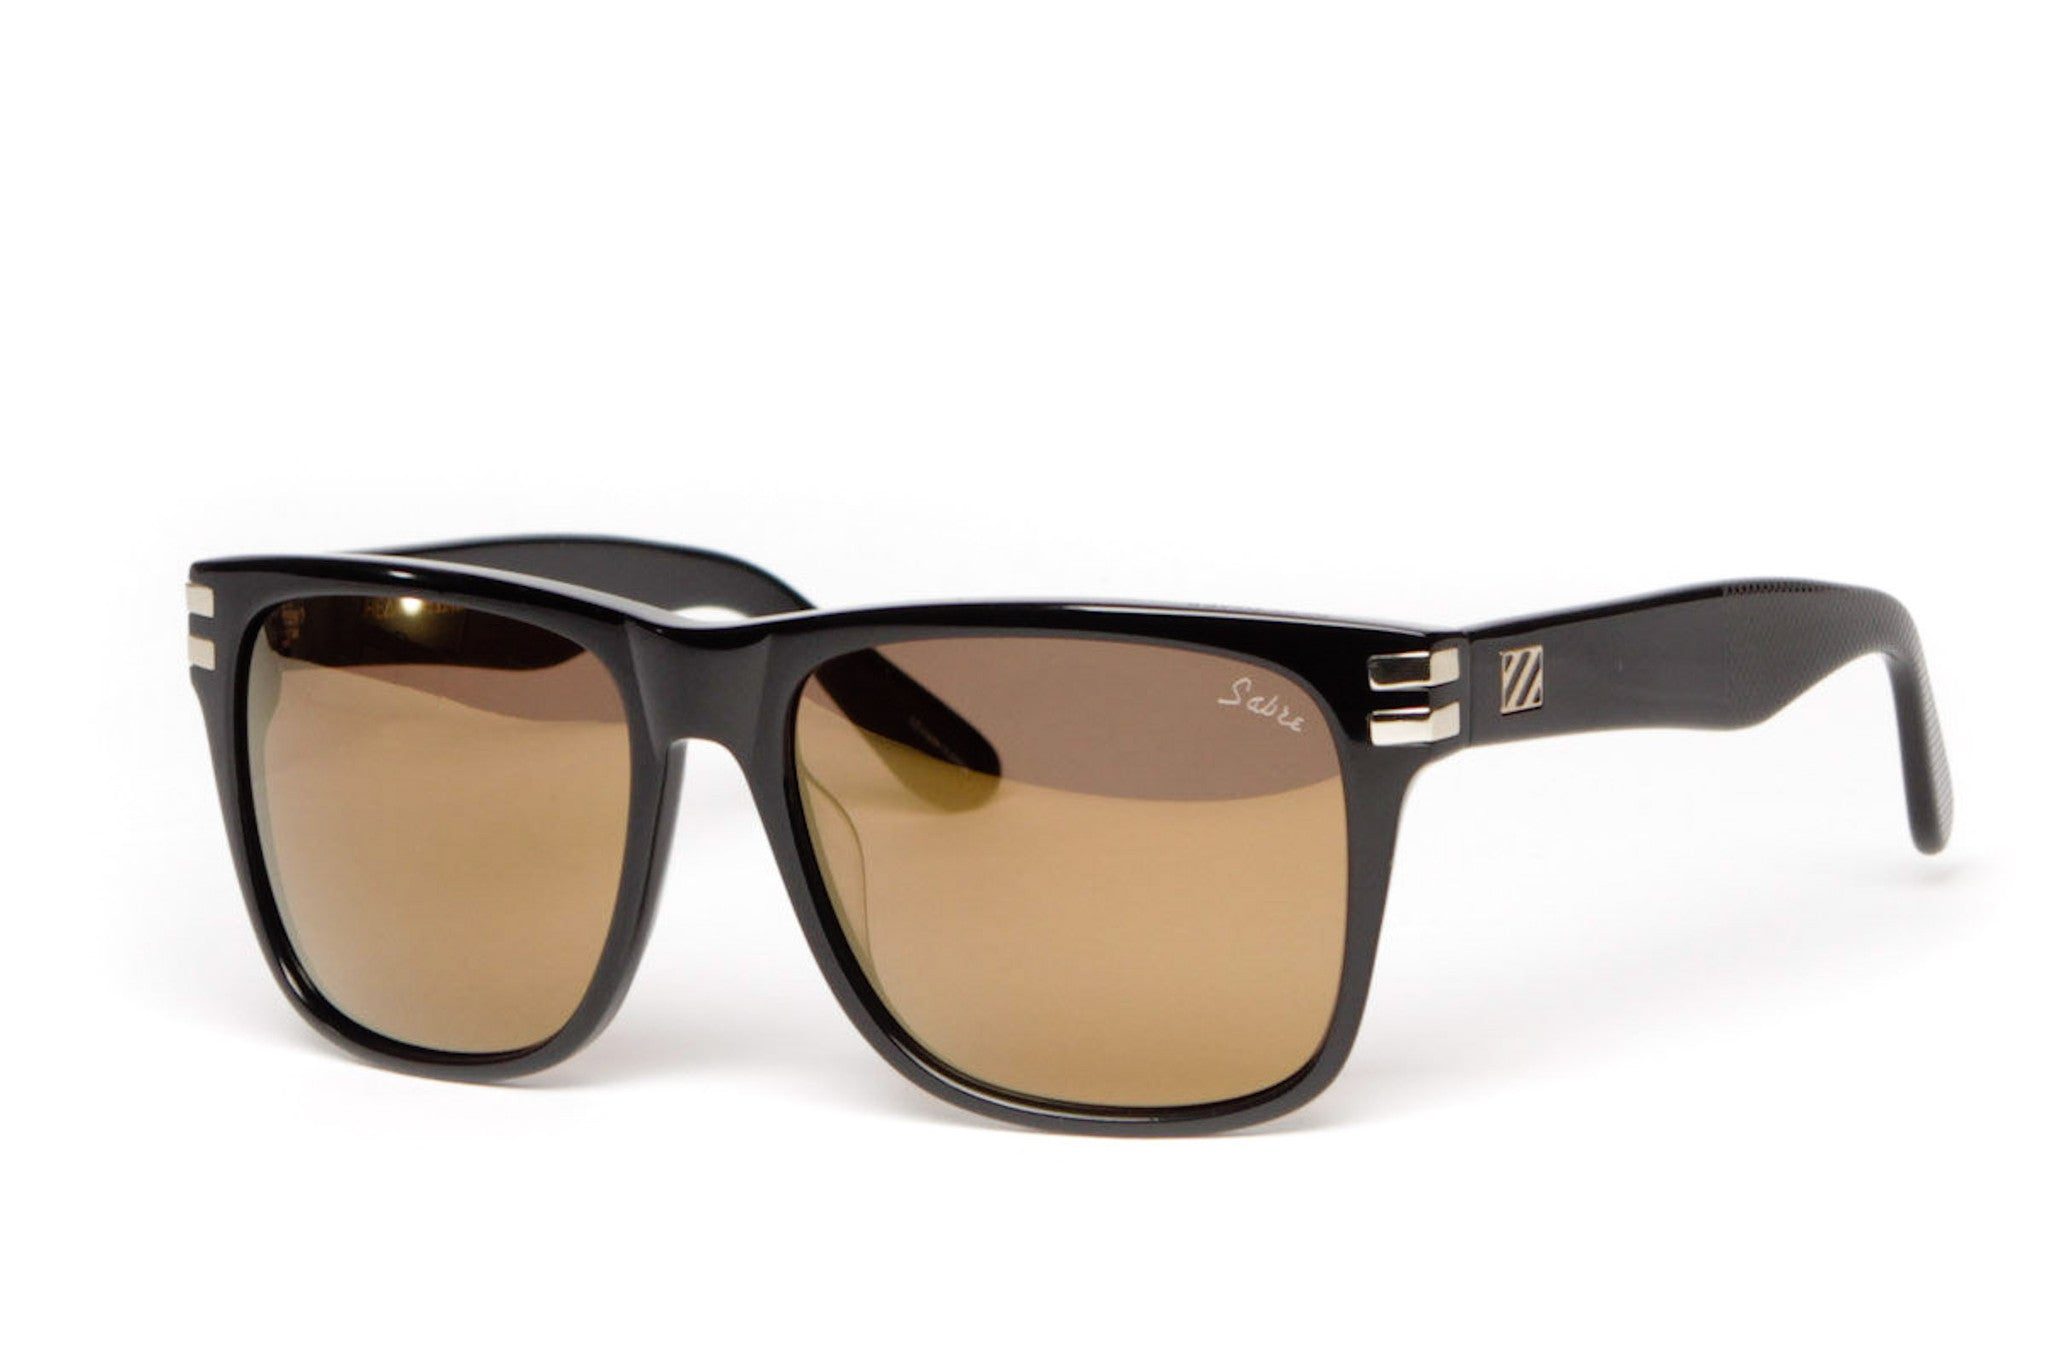 Heartbreaker Sunglasses (Black Gloss/Gold Mirror)